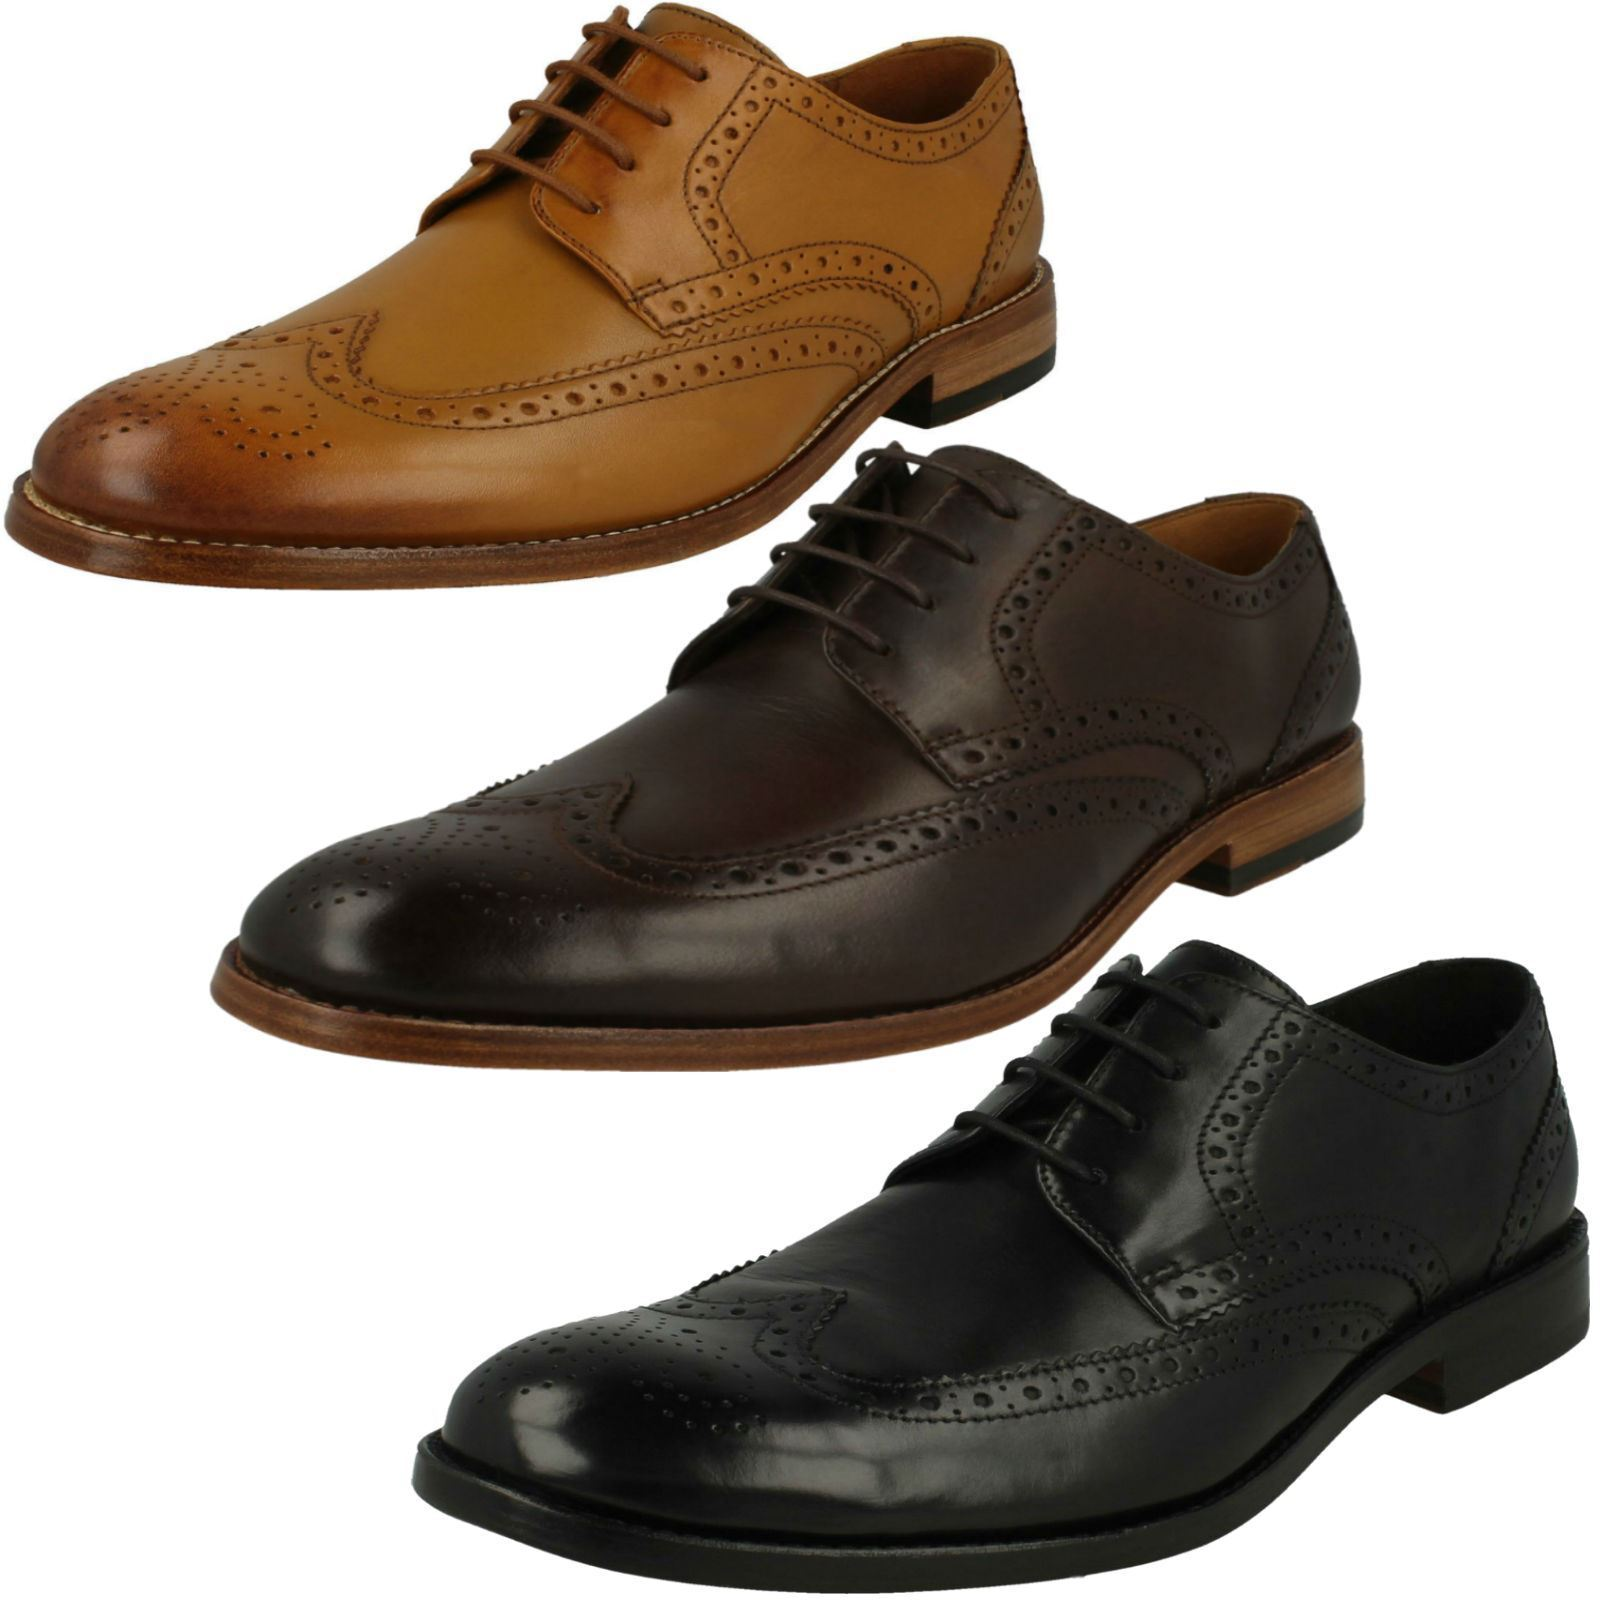 Mens Clarks Formal Lace Up Brogue Detailed shoes James Wing